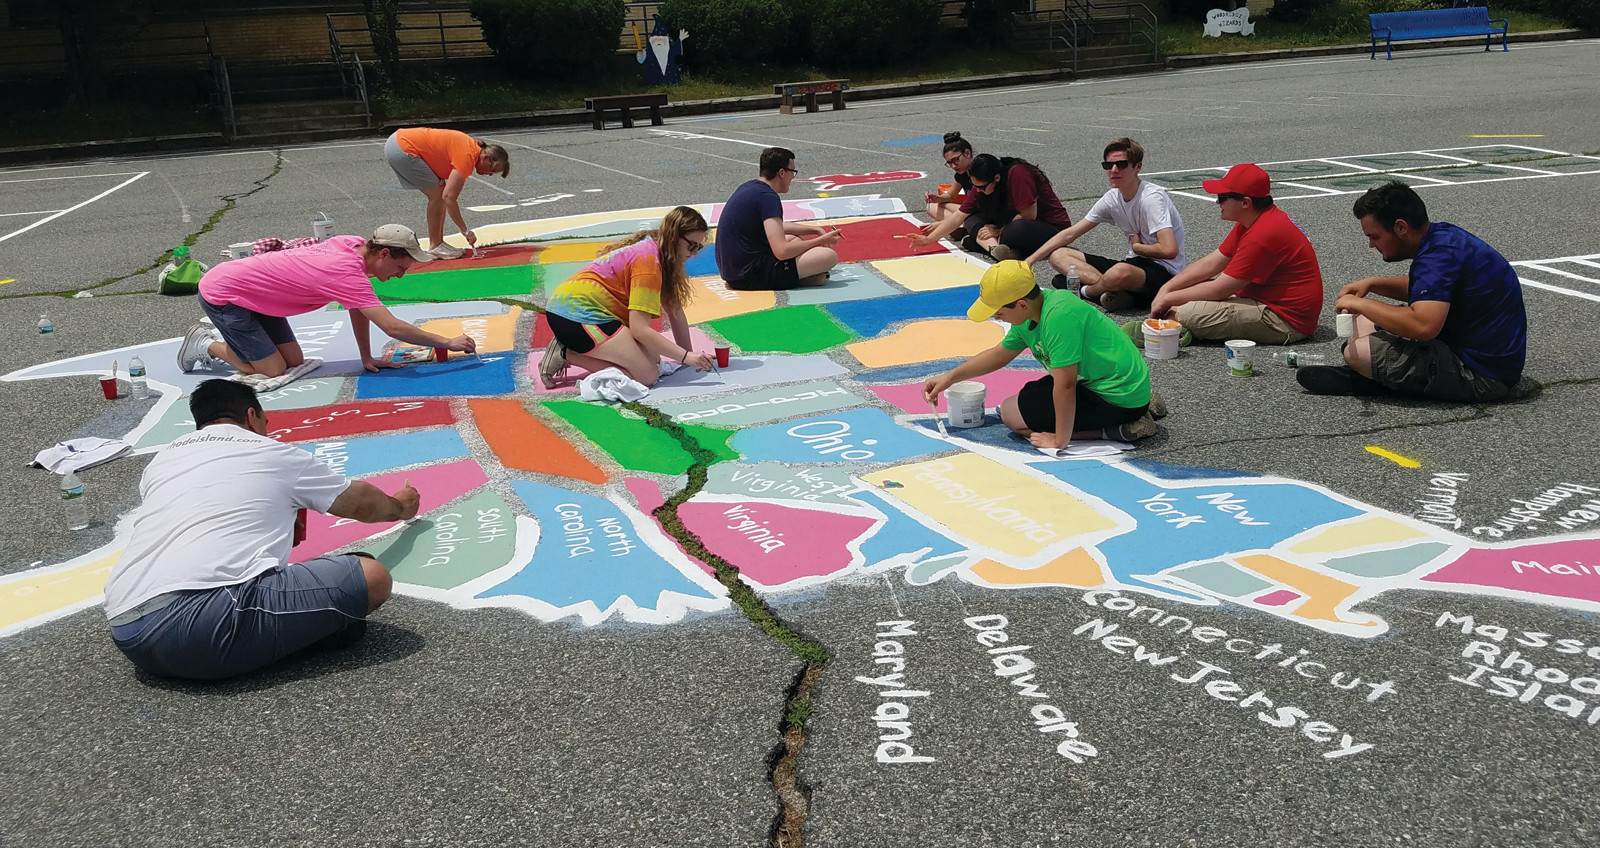 FUTURE EAGLE SCOUT: Jeffrey Marchetti, a Woodridge Elementary School alumnus, chose to redo the blacktop artwork for the current students and those of future generations to enjoy as his Eagle Scout project.